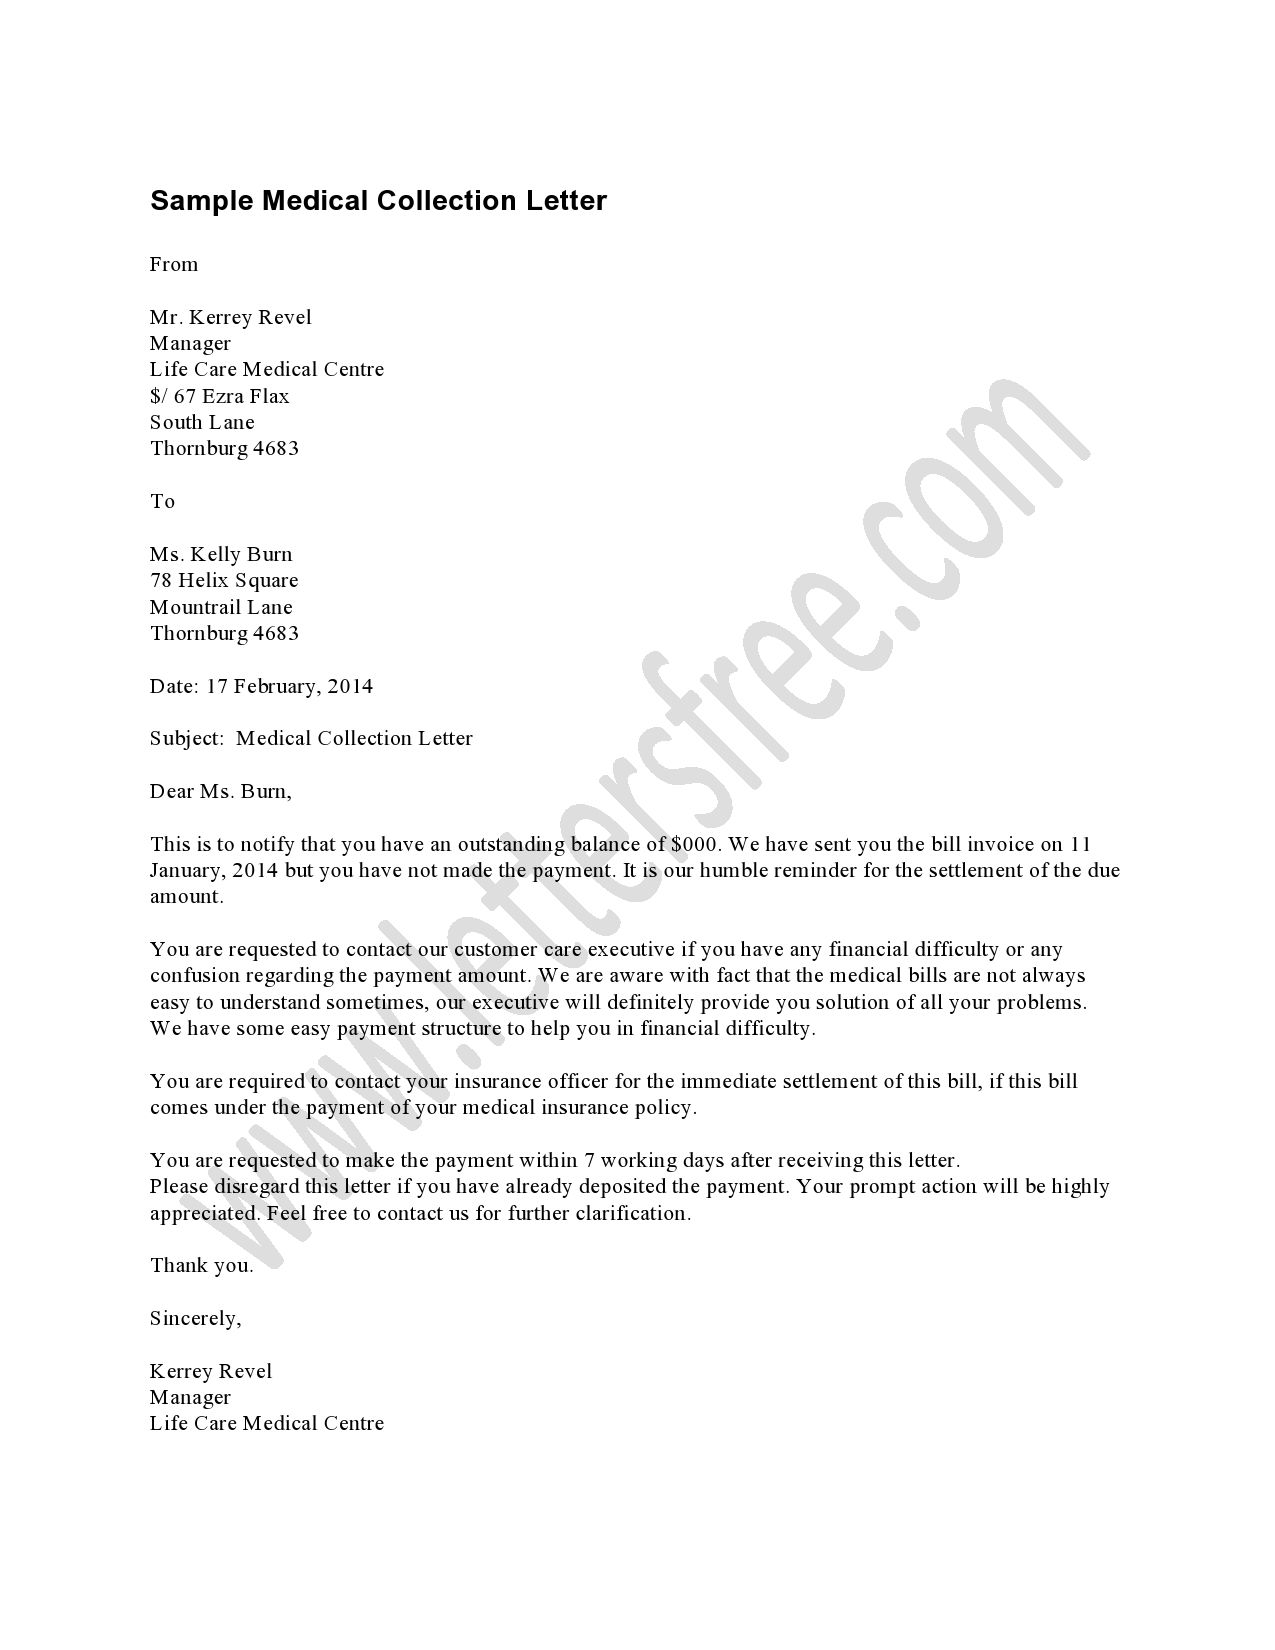 Medical Collection Letter Example Should Be Used As A First